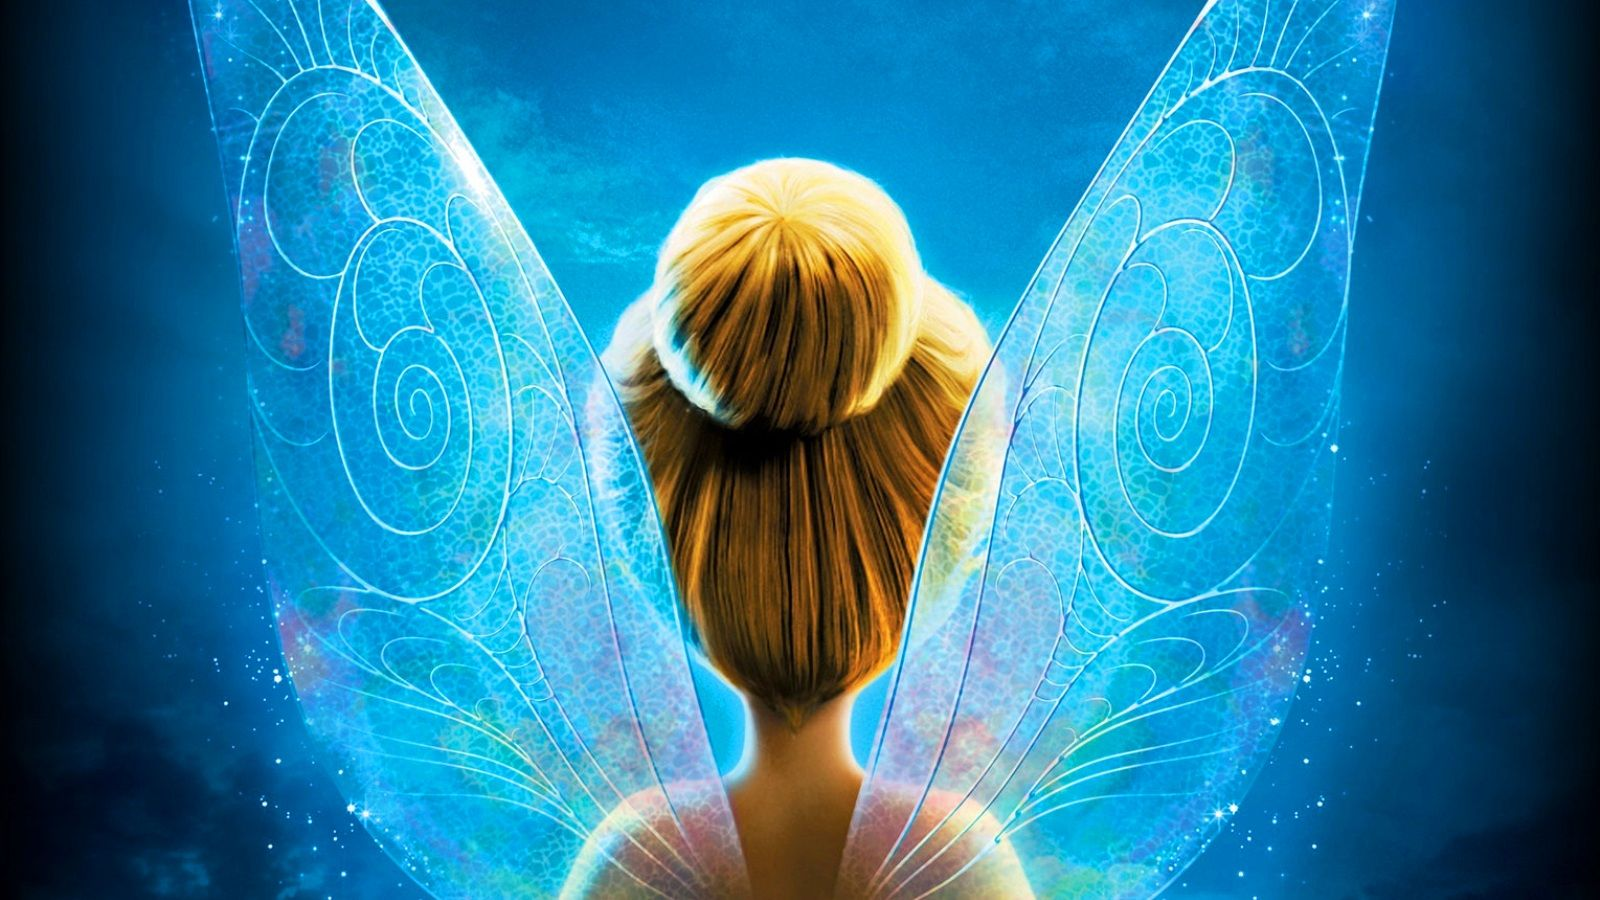 Tinkerbell The Mysterious Winter Woods Wallpaper Tinkerbell Secret Of The Wings Tinkerbell Wallpaper Tinkerbell Pictures Secret Of The Wings